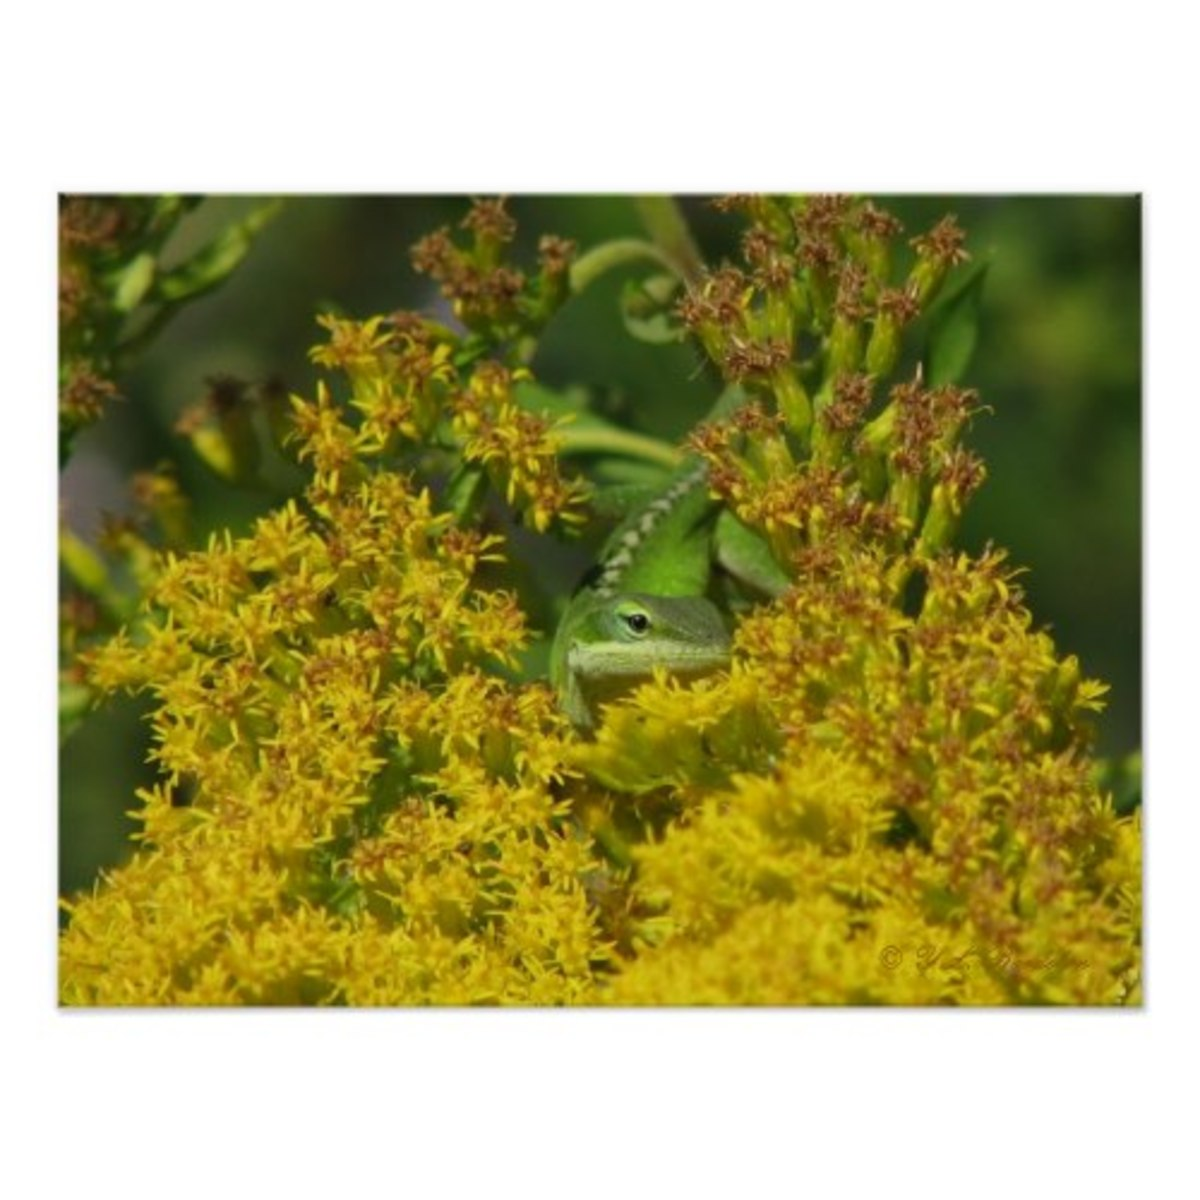 Goldenrod attracts many pollinators when it blooms in the fall. Green anole in goldenrod available on Zazzle.